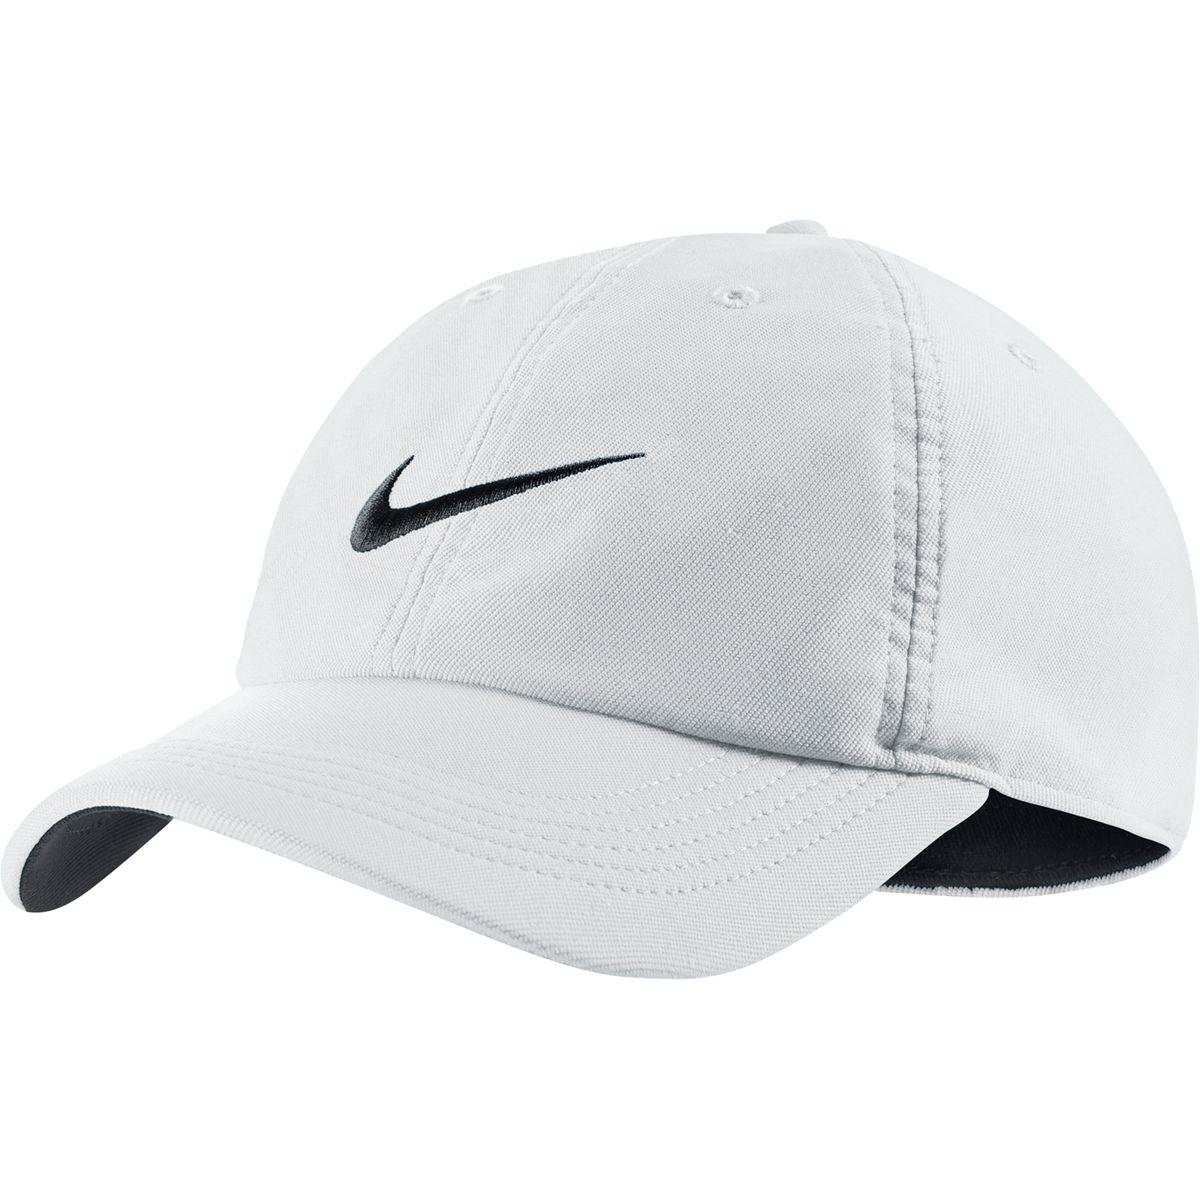 f7dd02d7ae2 Lyst - Nike H86 Aerobill At Hat in White for Men